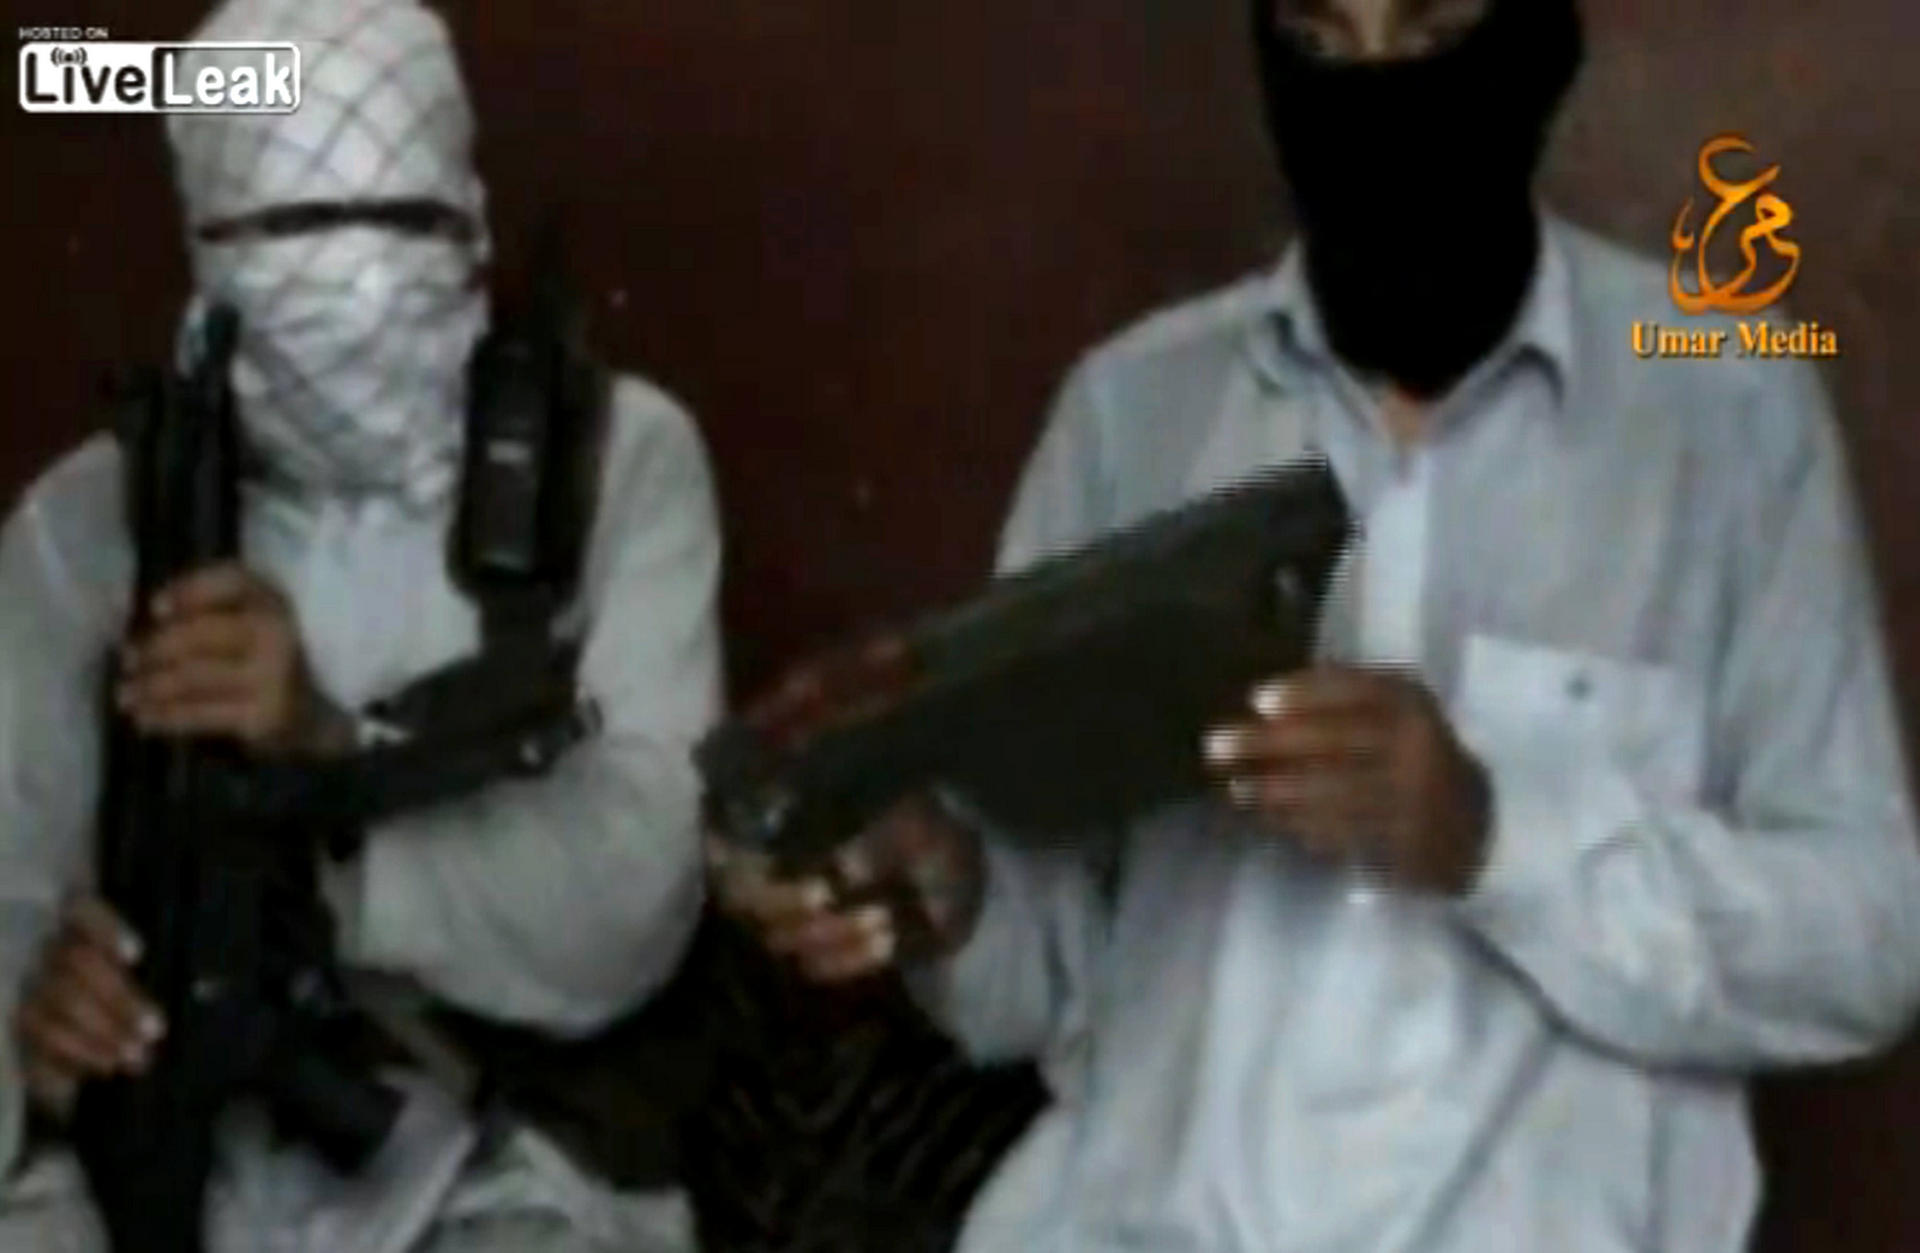 Taliban claims to have downed Pakistani helicopter from 3km away